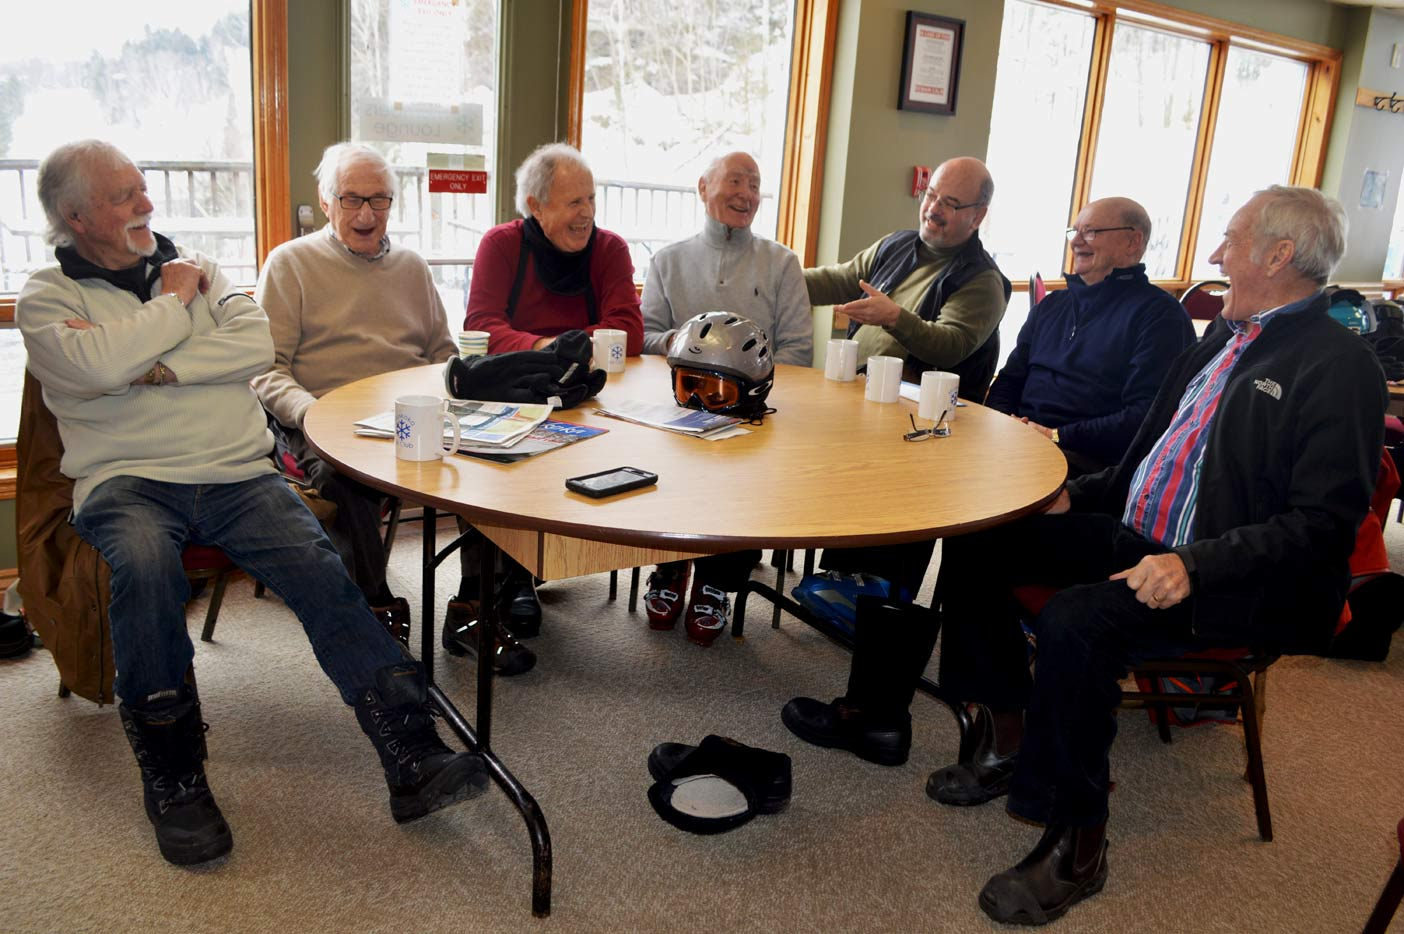 "(From left) Colin Oke, Murray Ruby, Peter Wood, Ken Raven, Bryan ""Cubby"" Young, Ken Farnsworth and Joe Spiers, some of the old-time skiers who get together on Mondays at Hidden Valley Highlands Ski Area."